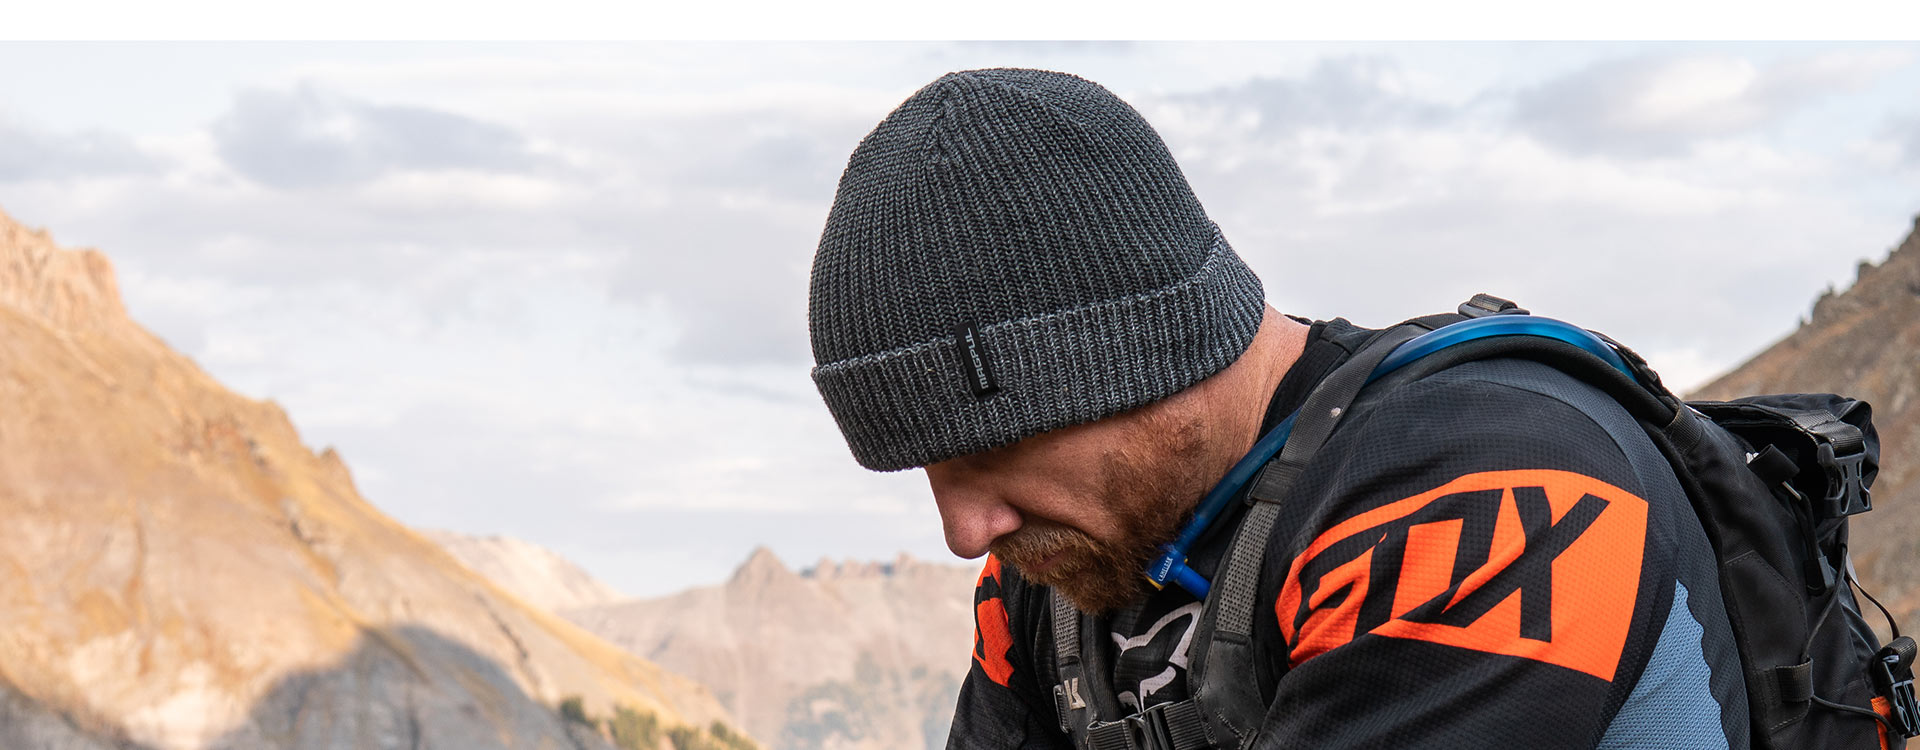 Charcoal Heather Magpul Merino Watch Cap on bearded man in technical gear taking rest at the top of a mountain